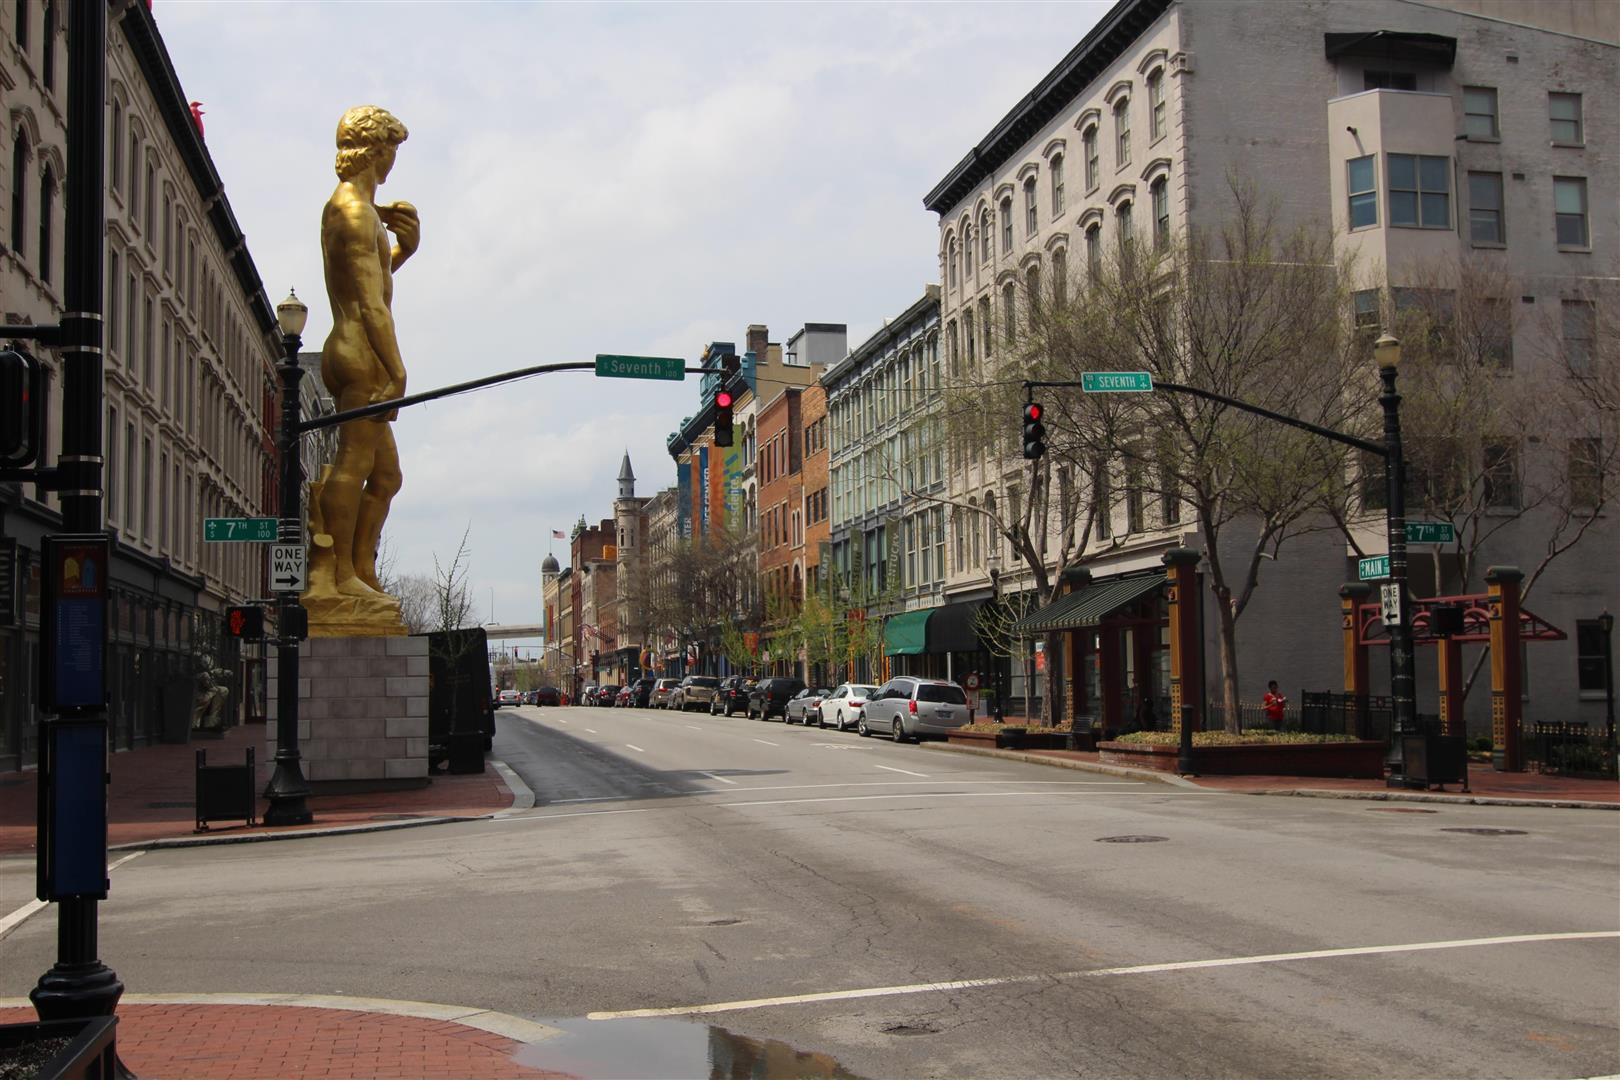 DowntownLouisvilleMainAnd7th.jpg